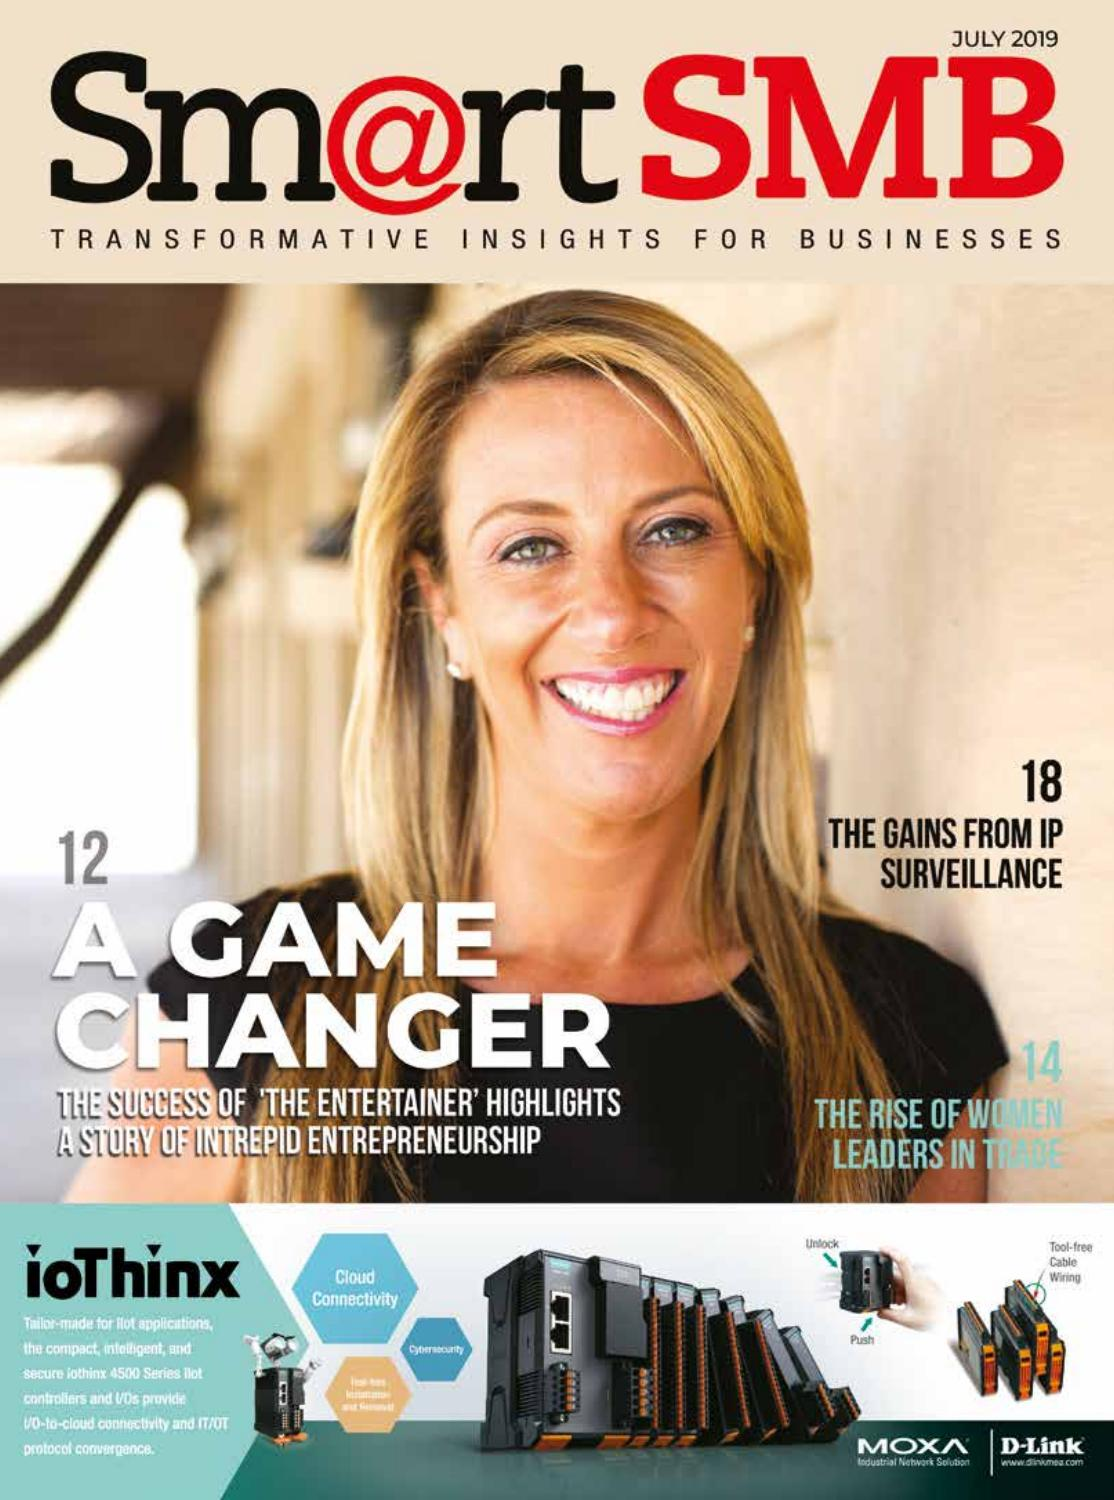 Smart SMB July 2019 by Business Media International - issuu